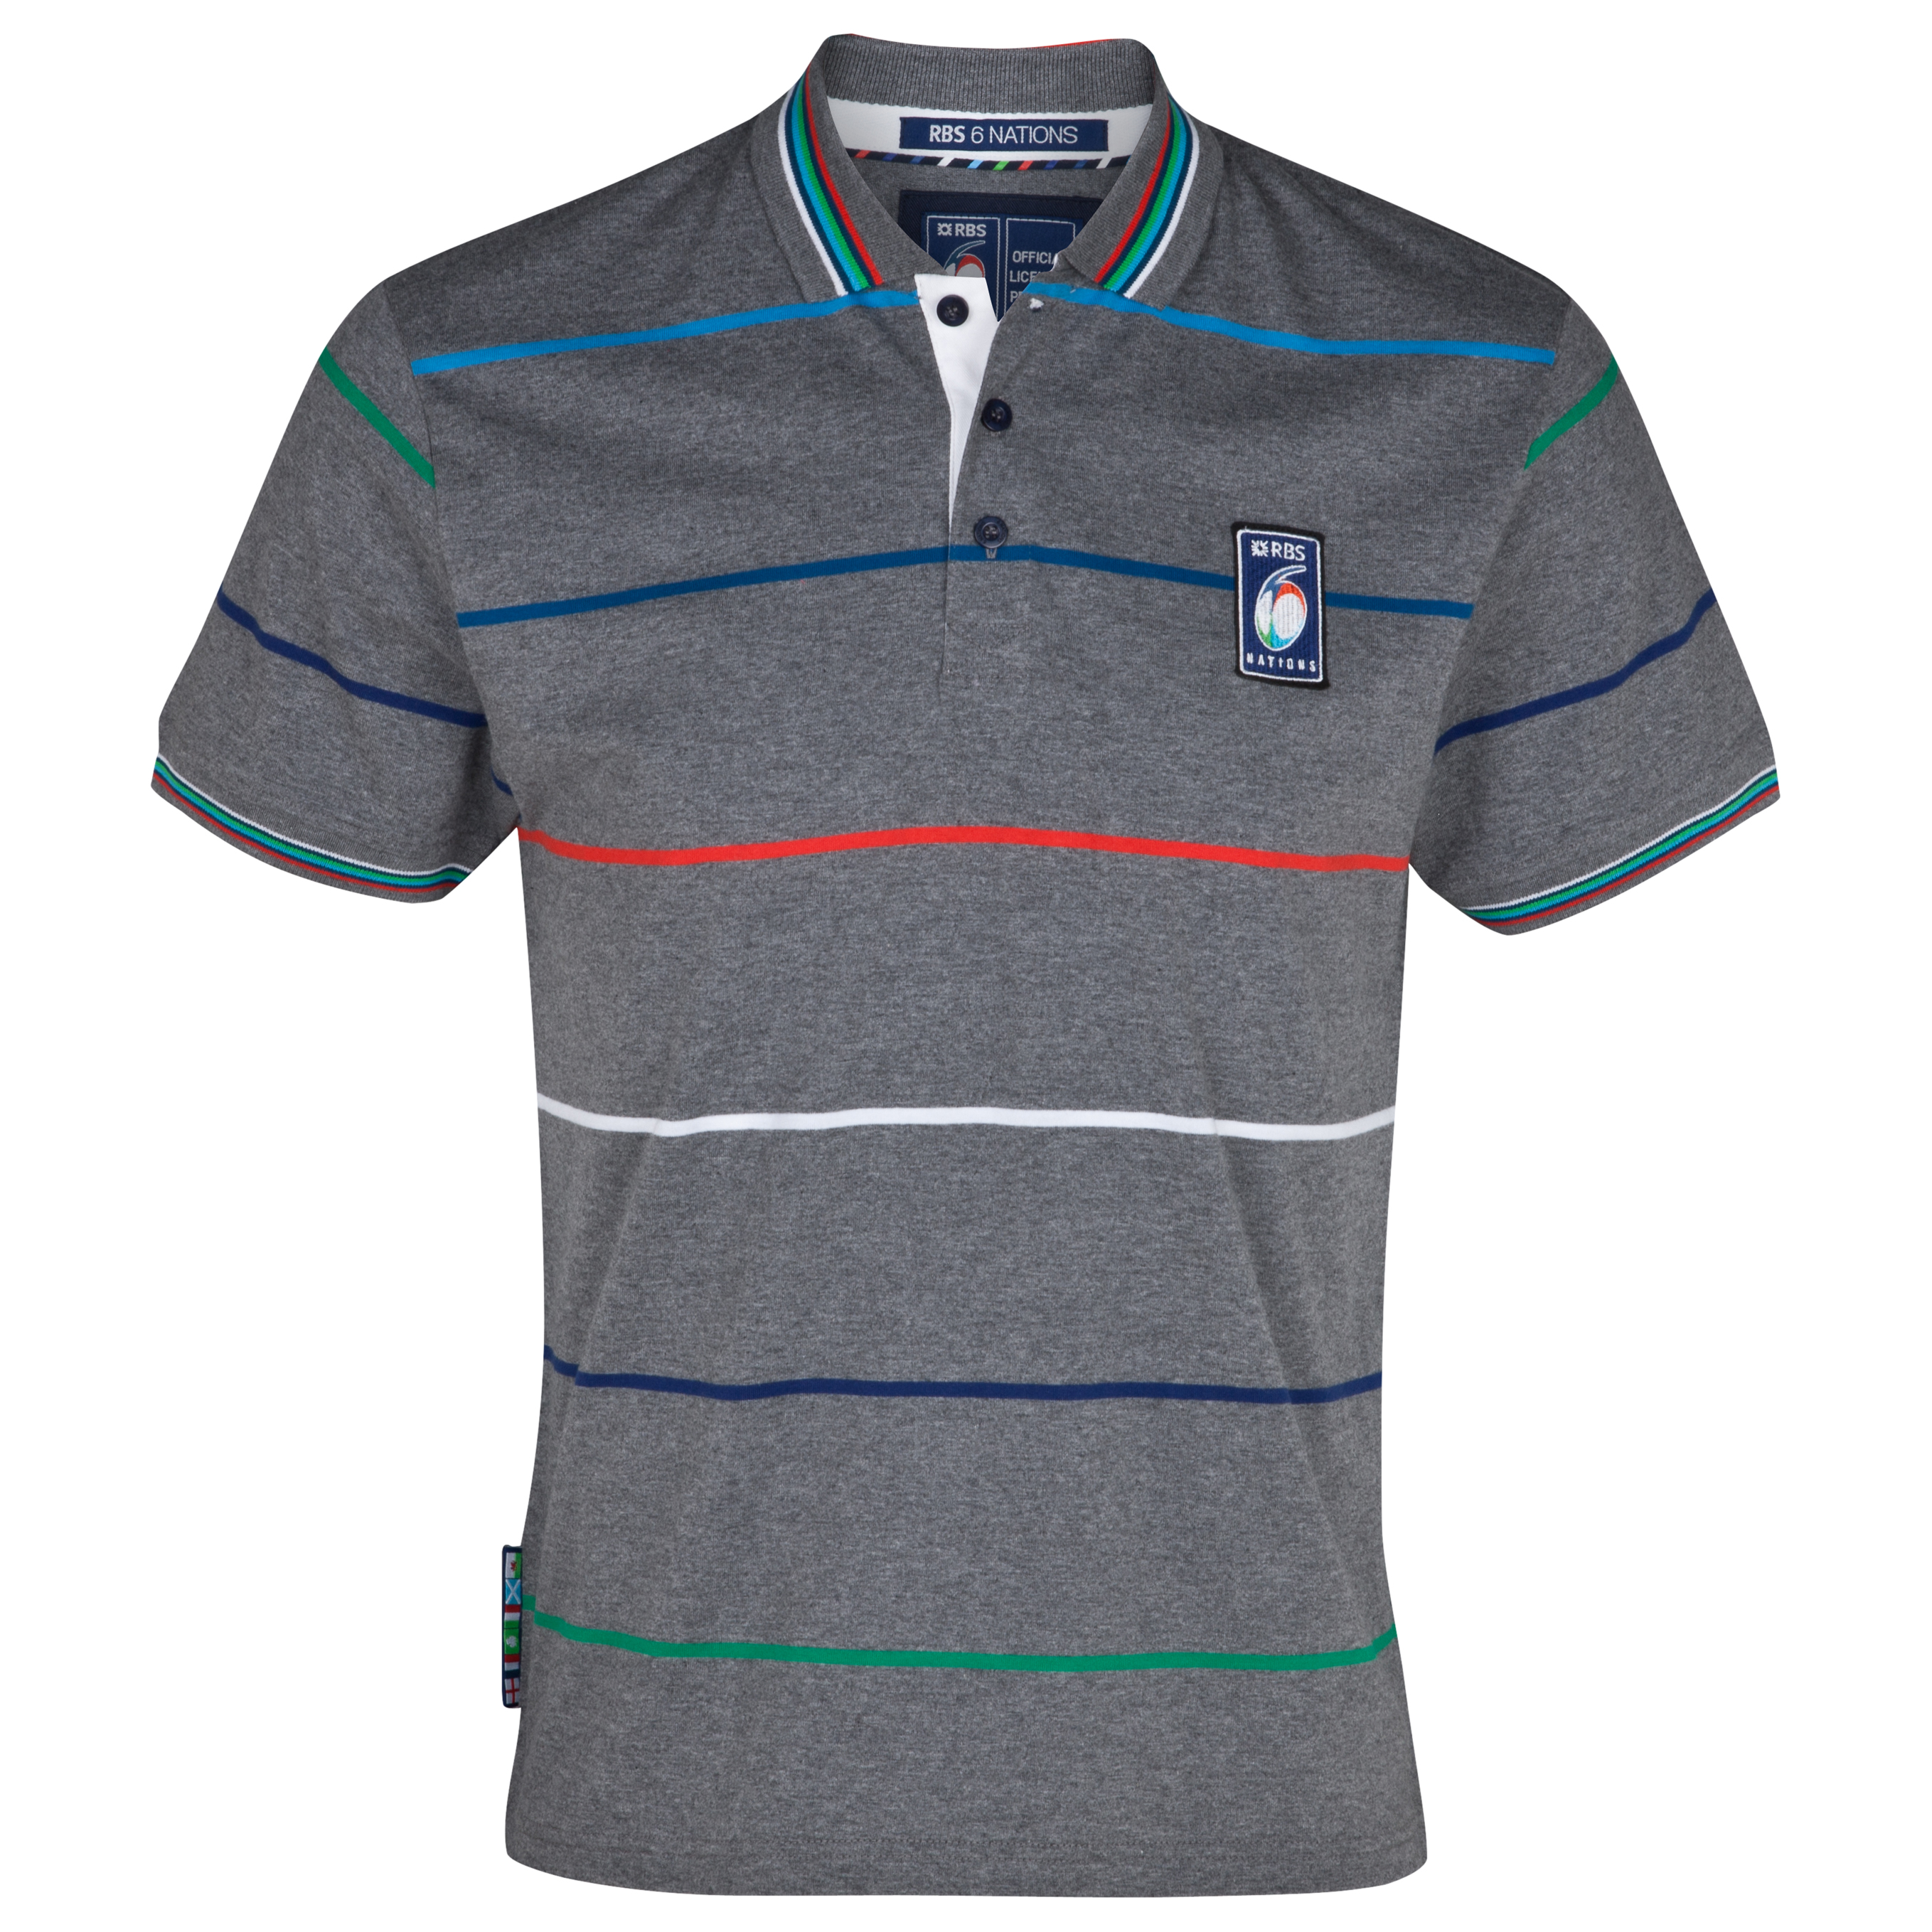 RBS 6 Nations Striped Jersey Polo - Dark Grey Marl